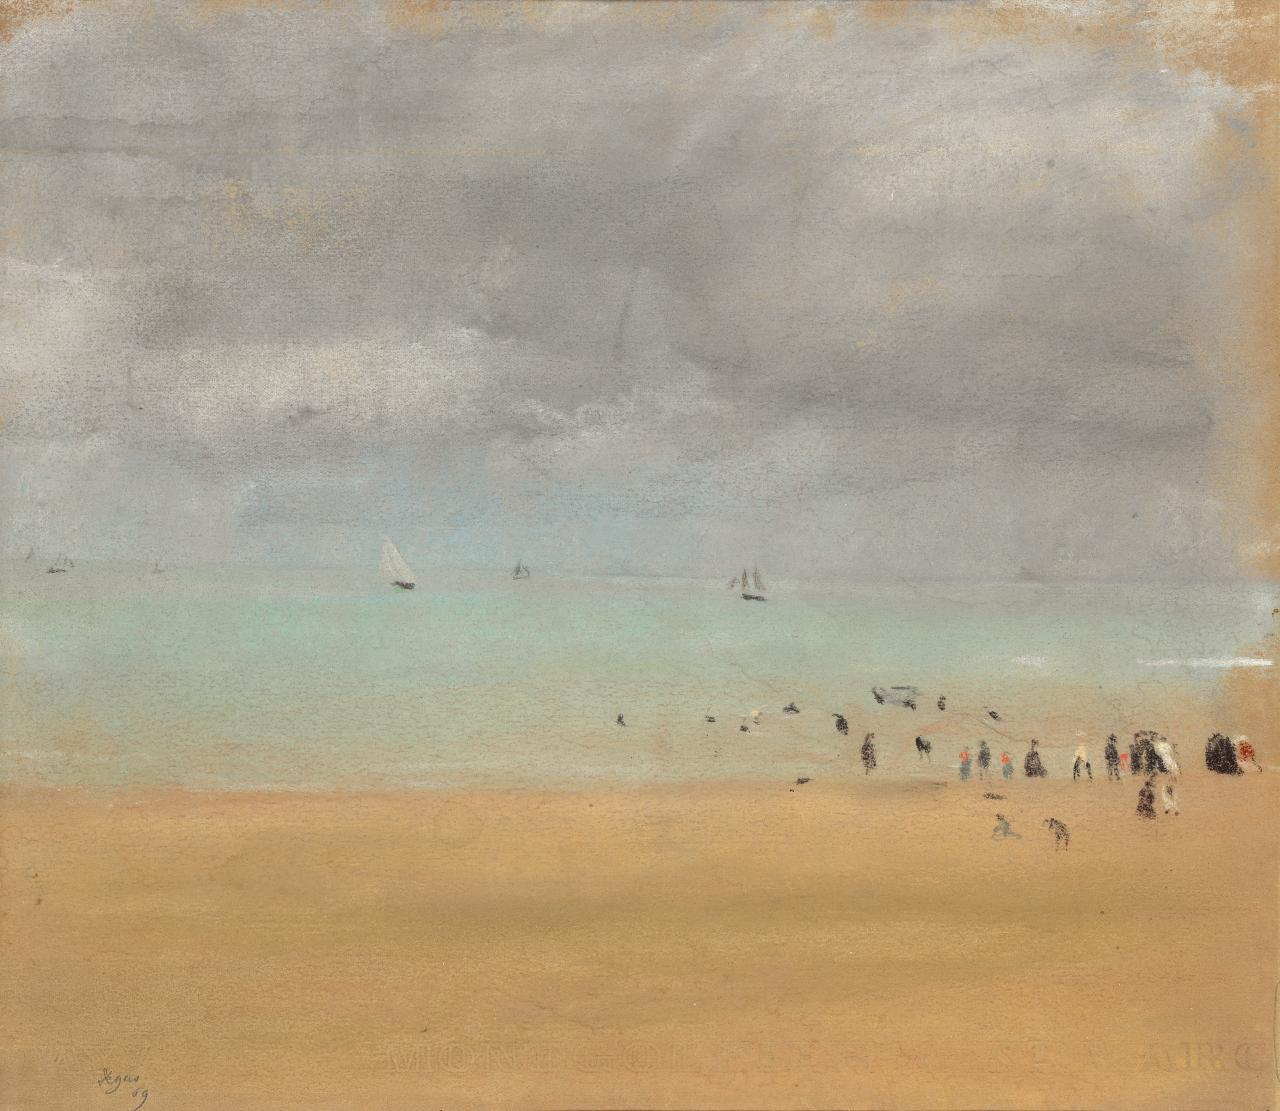 Edgar Degas Beach at low tide (Plage à marée basse) 1869